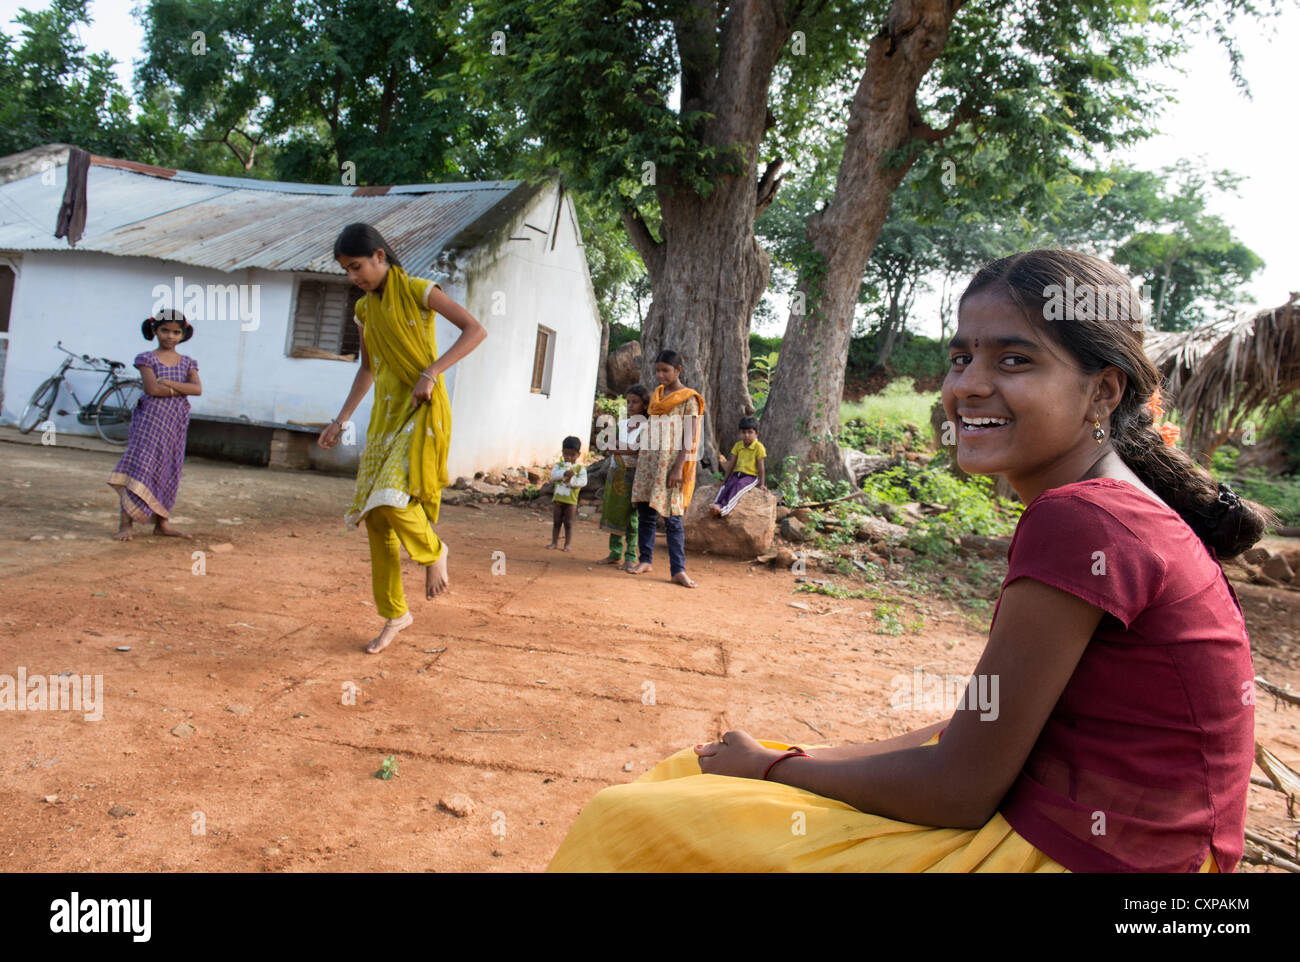 Indian Girls Playing Games In A Rural Indian Village -5556